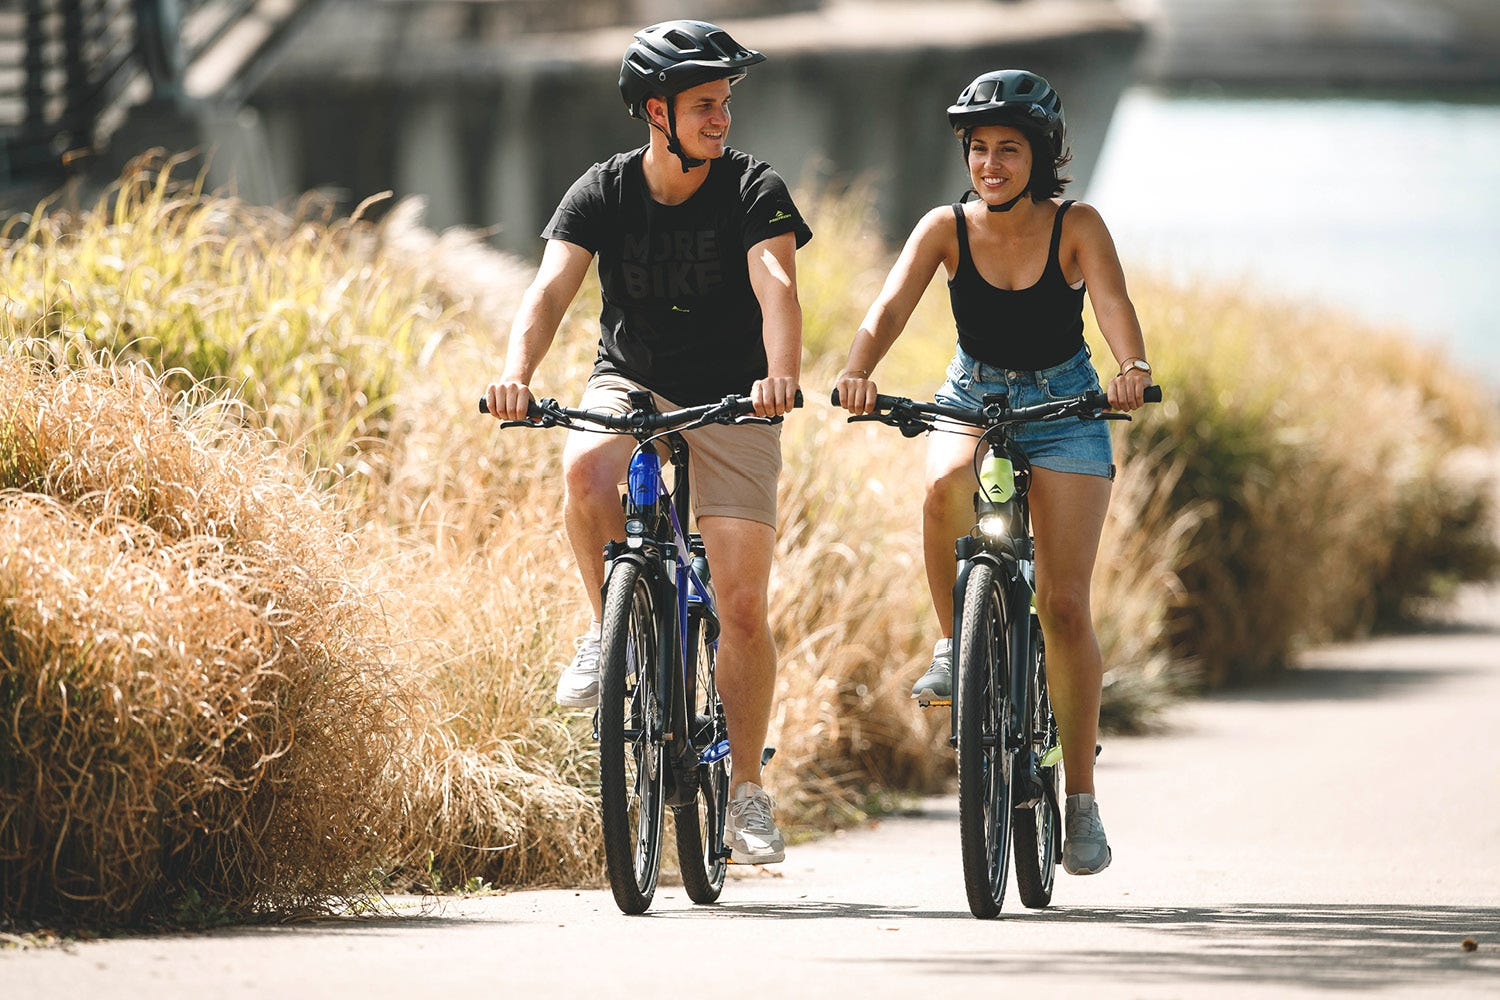 10 Reasons Why An E-Bike Is Great for Summer